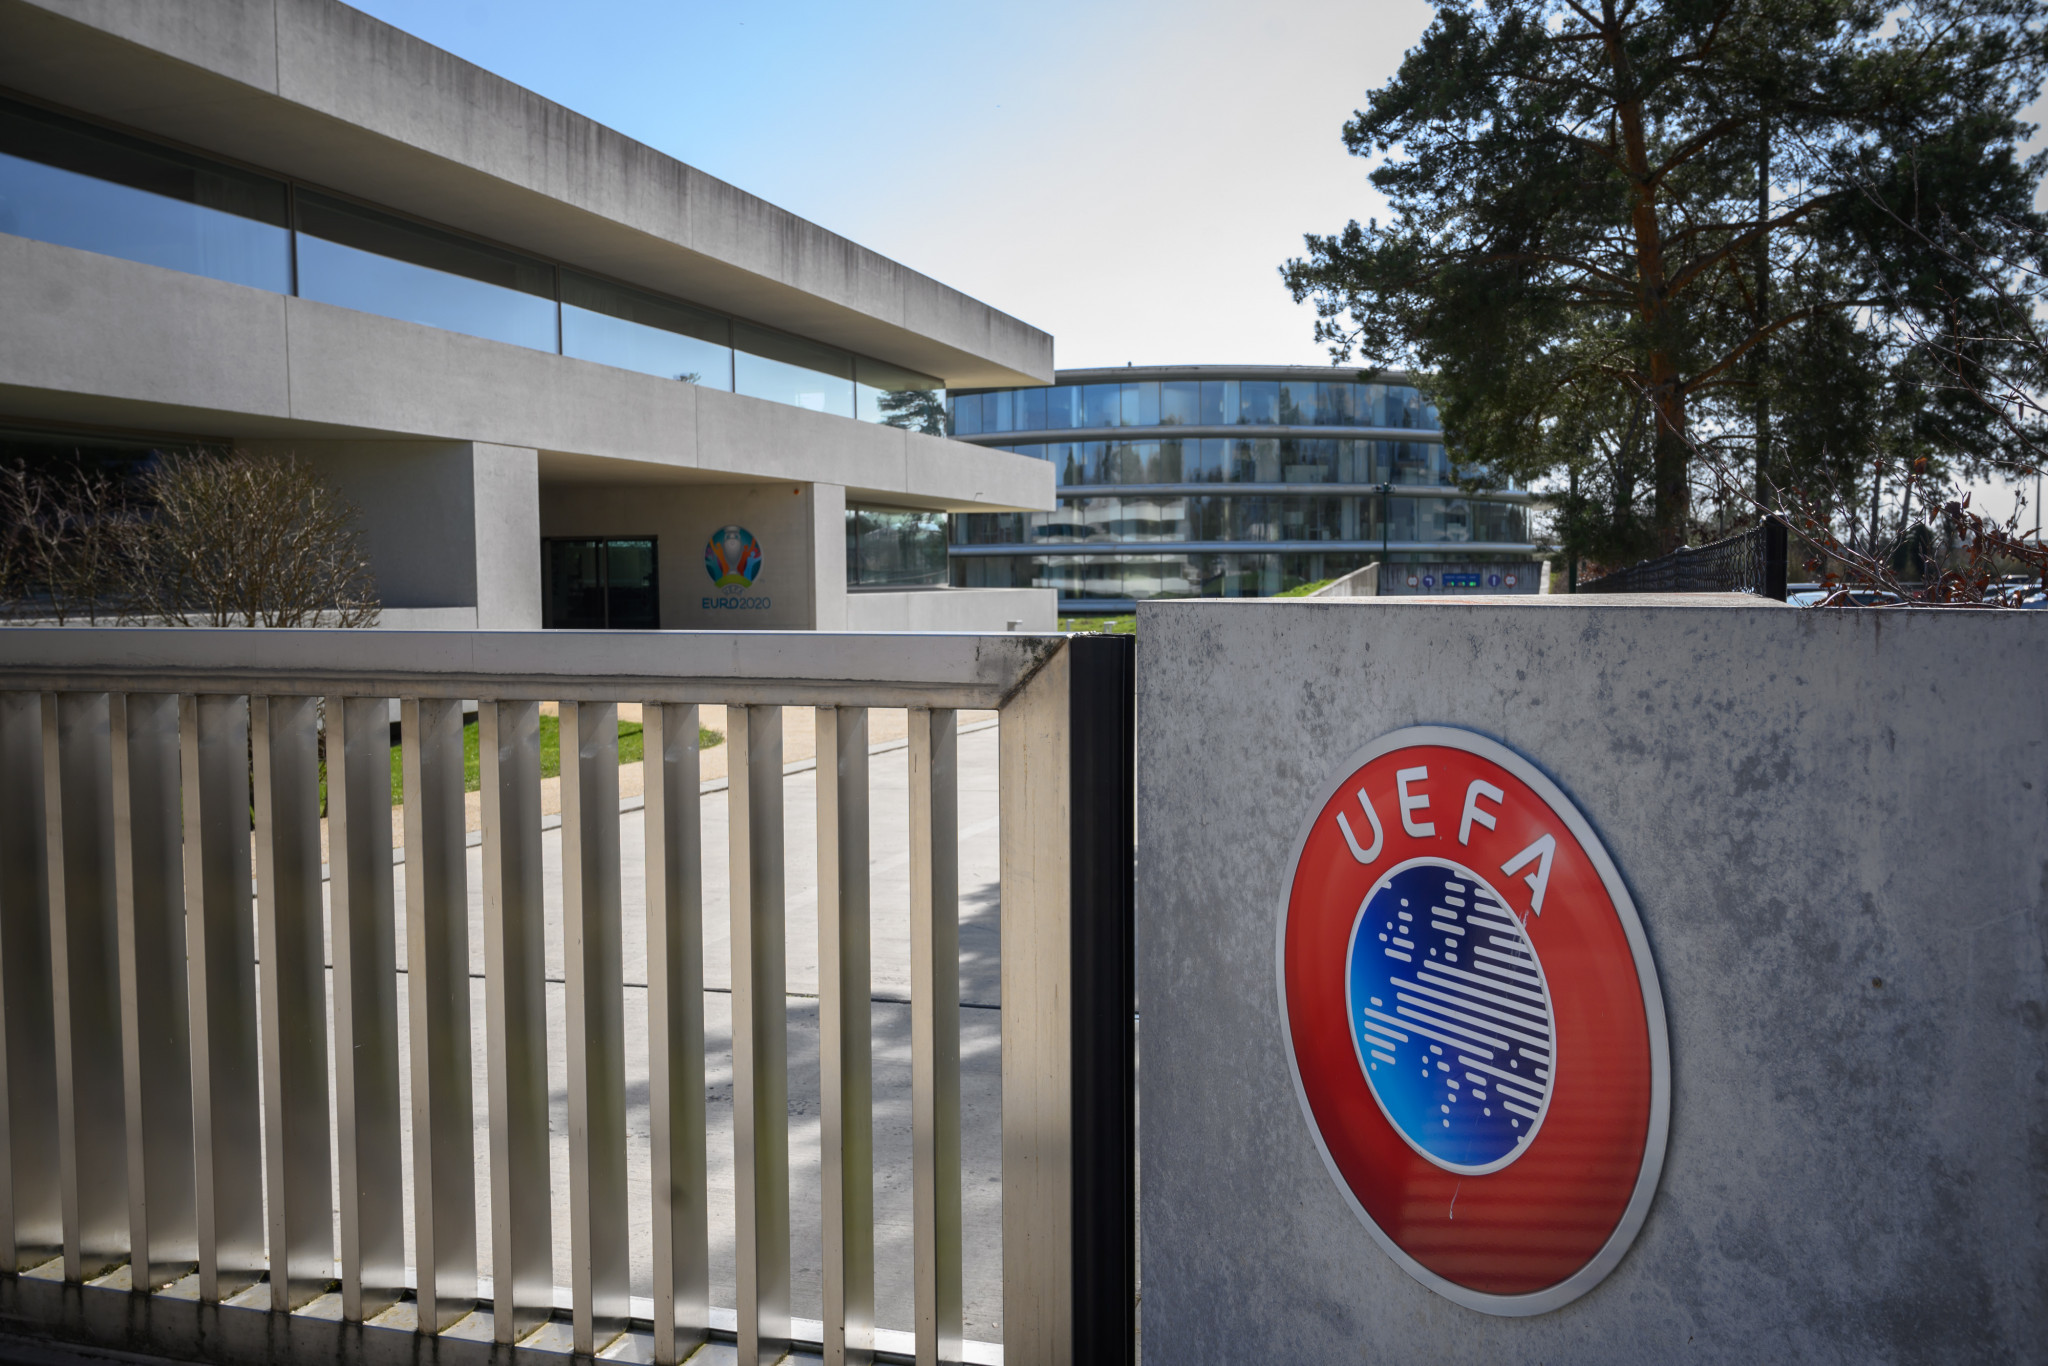 UEFA seeks to remove judge from Madrid court case related to European Super League